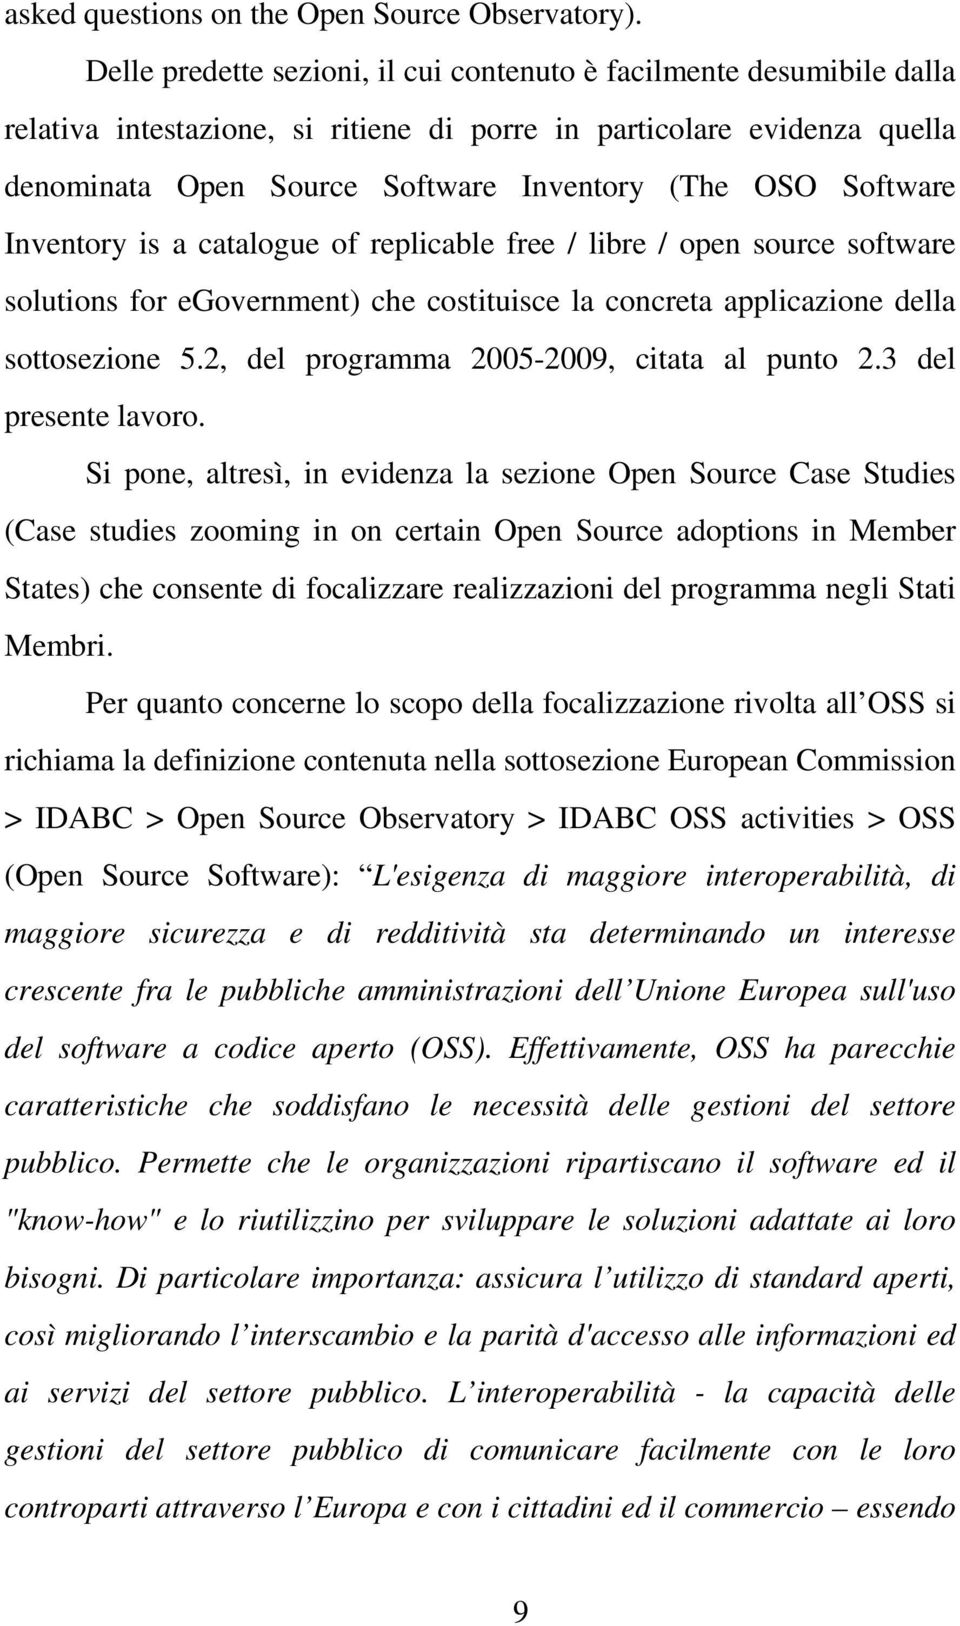 Software Inventory is a catalogue of replicable free / libre / open source software solutions for egovernment) che costituisce la concreta applicazione della sottosezione 5.